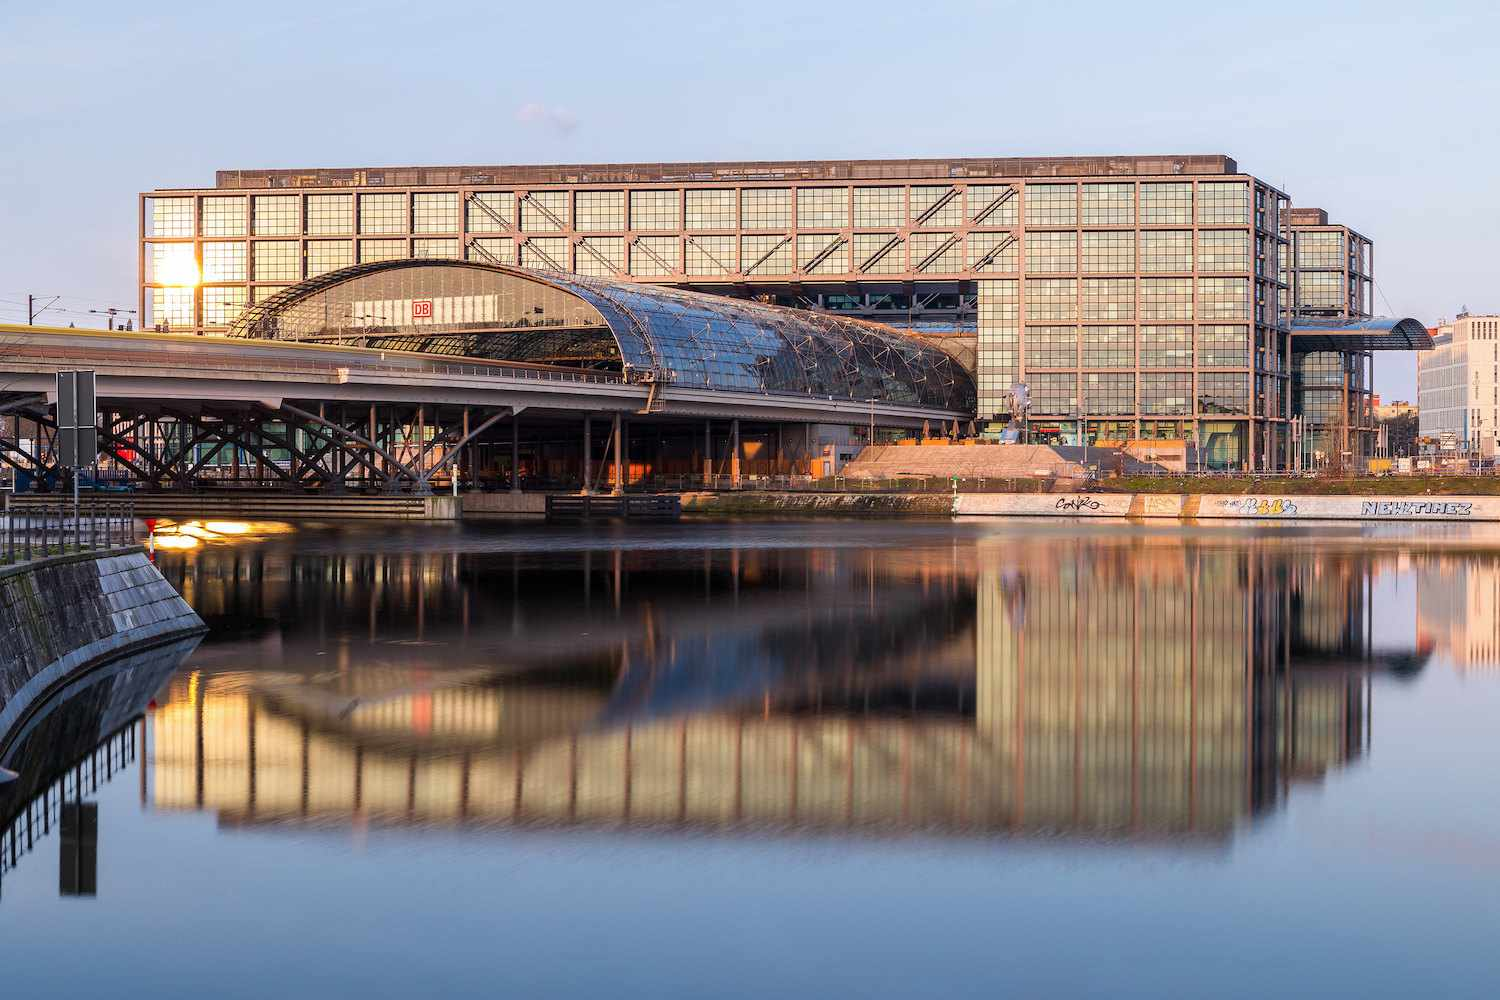 Berlin's Central Station reflected in the water